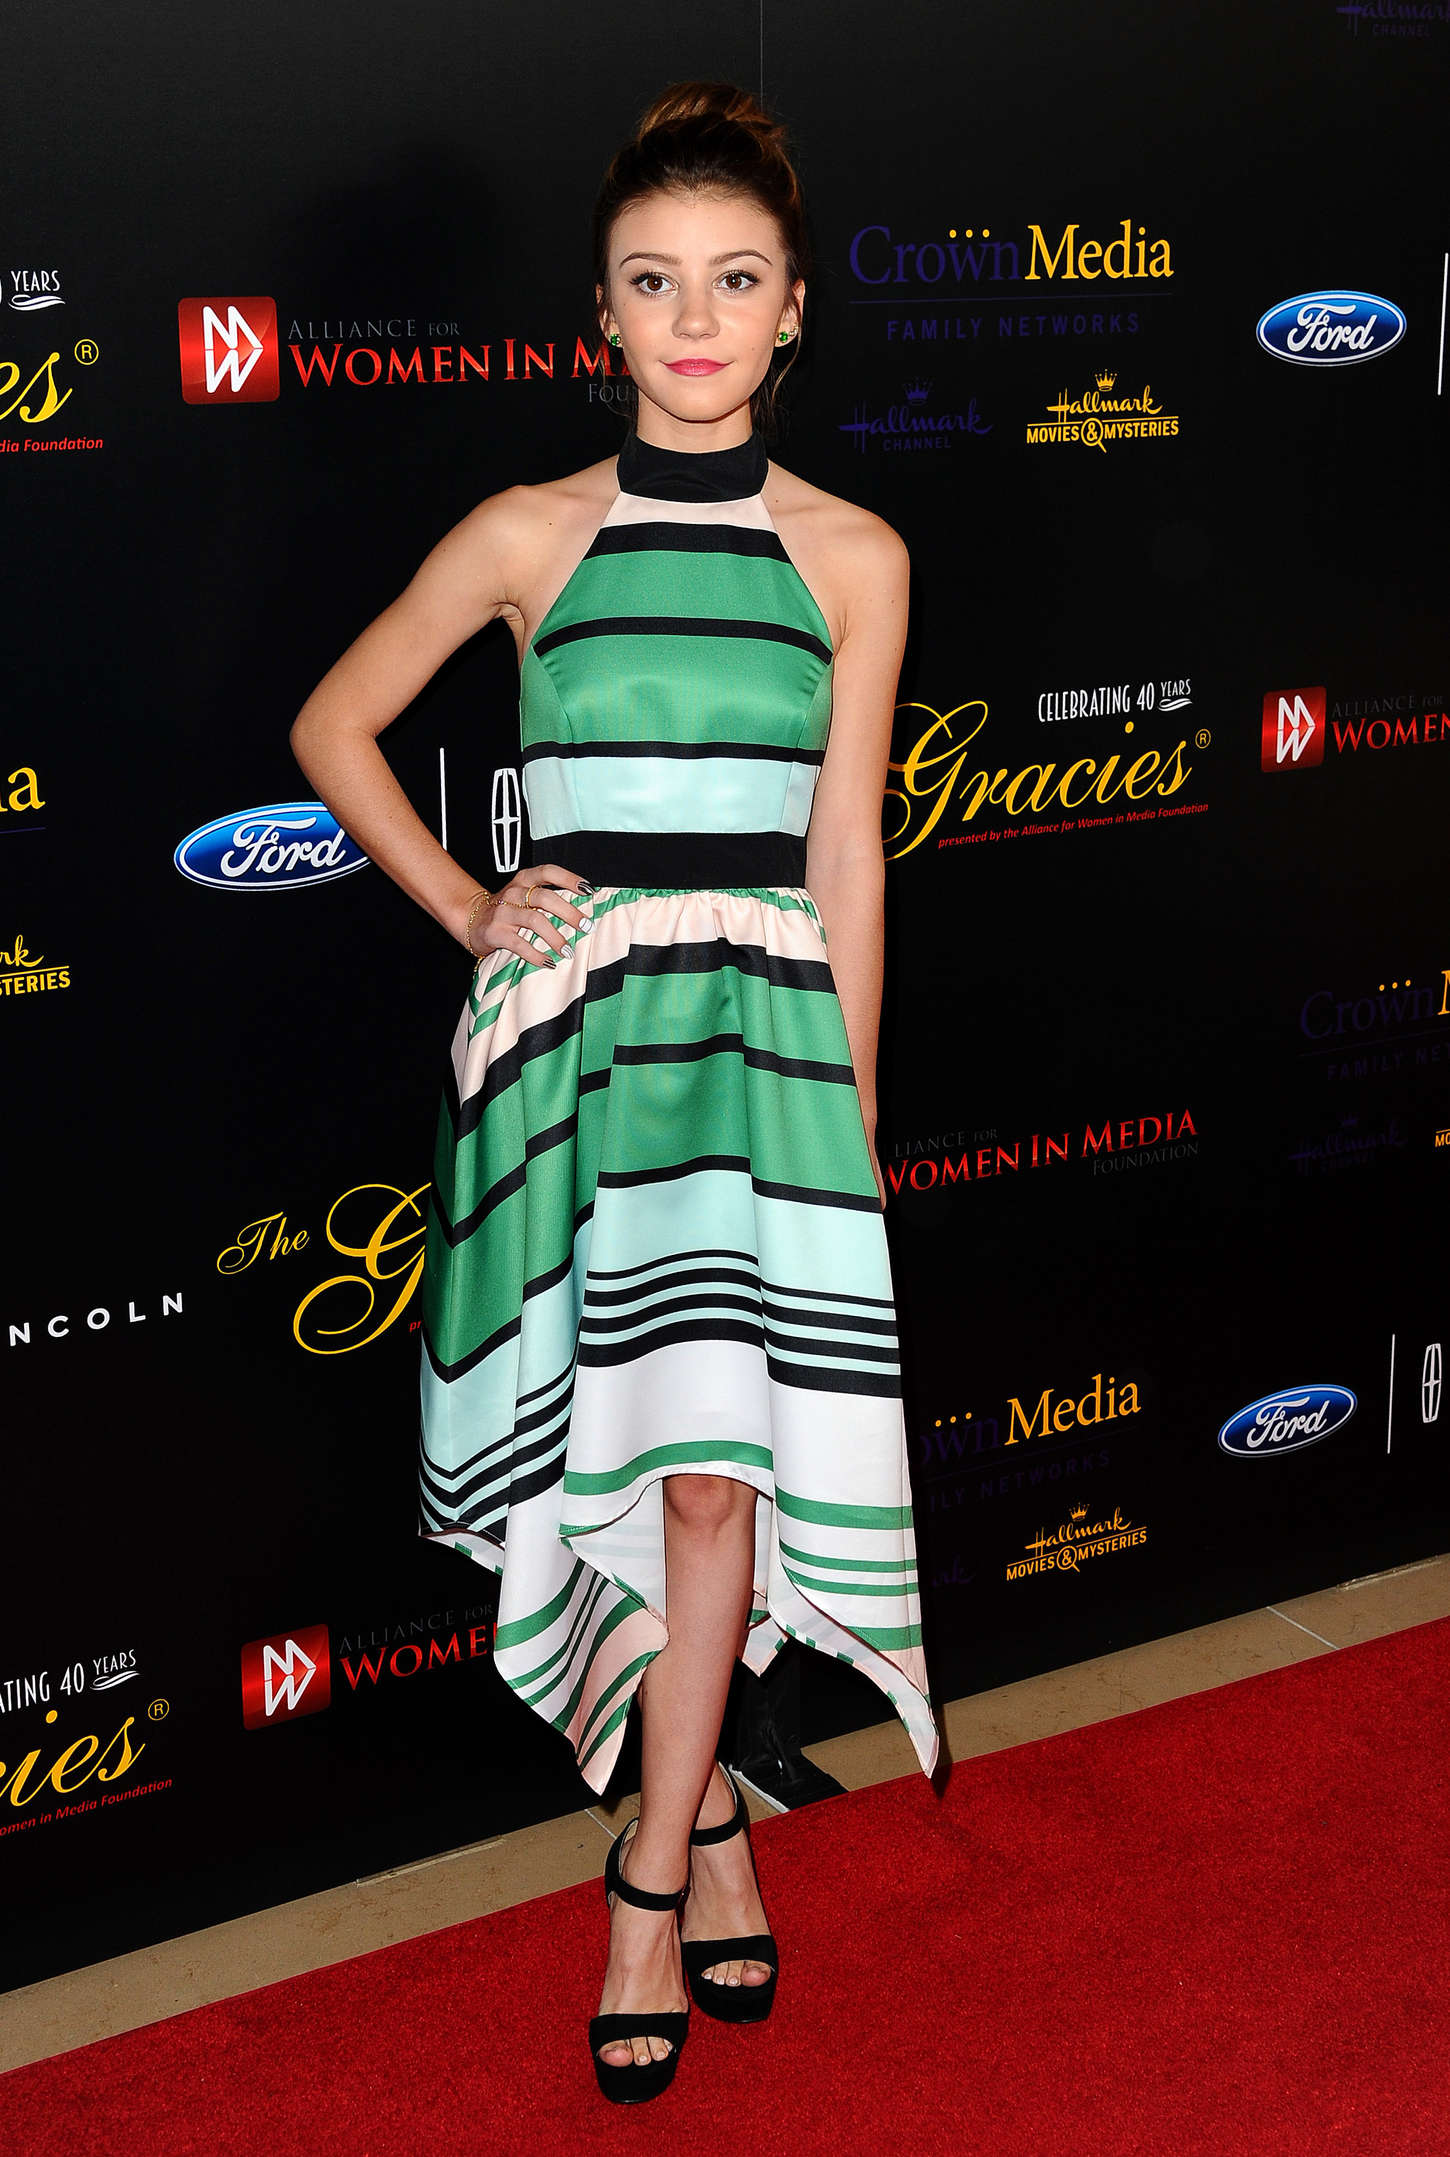 Genevieve Hannelius Anniversary Gracies Awards in Beverly Hills